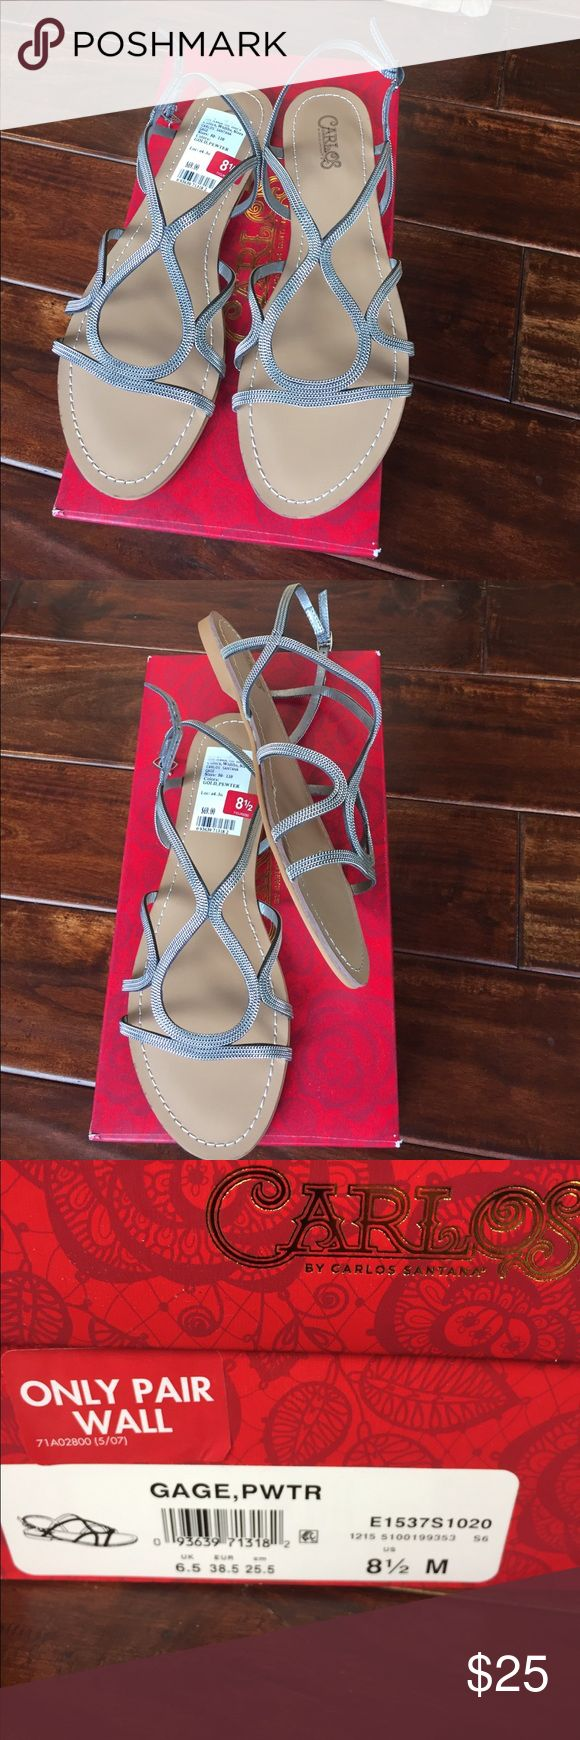 New Carlos pewter sandals size 8.5 New Carlos Santana sandals pewter - super cute, flats, size  8.5 Carlos Santana Shoes Sandals